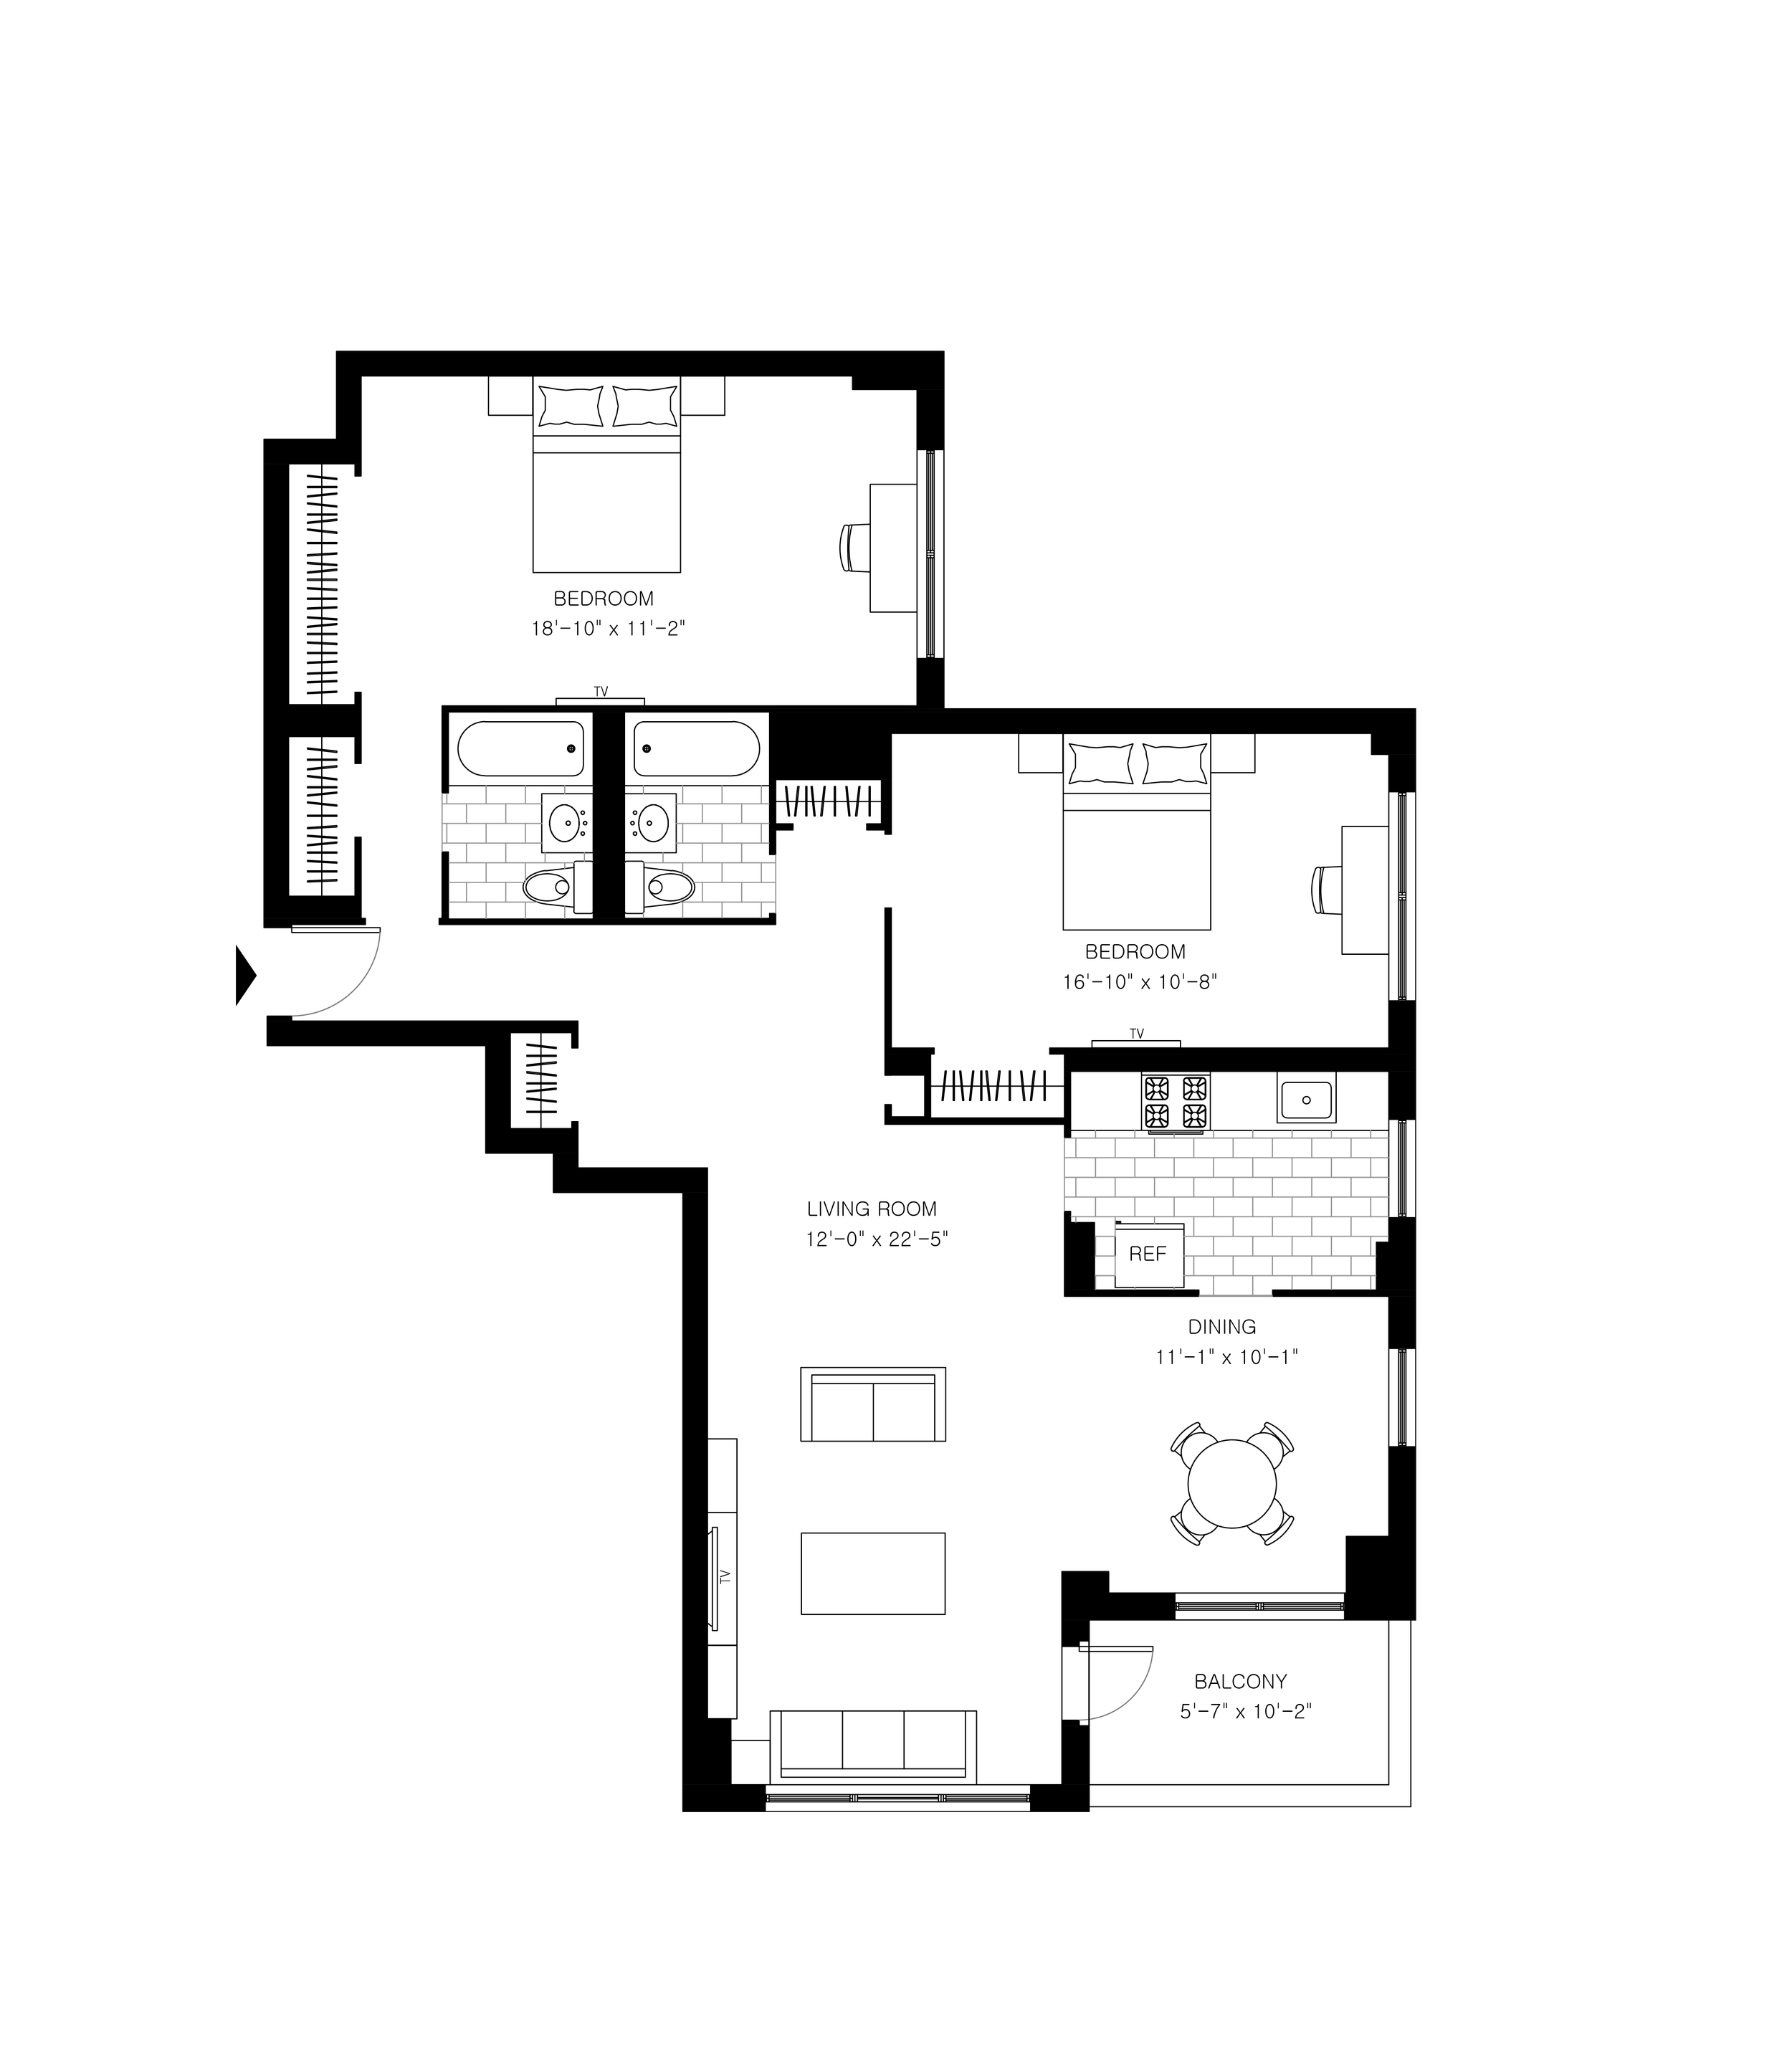 86th Street 2x2 with Dining Room-01.png